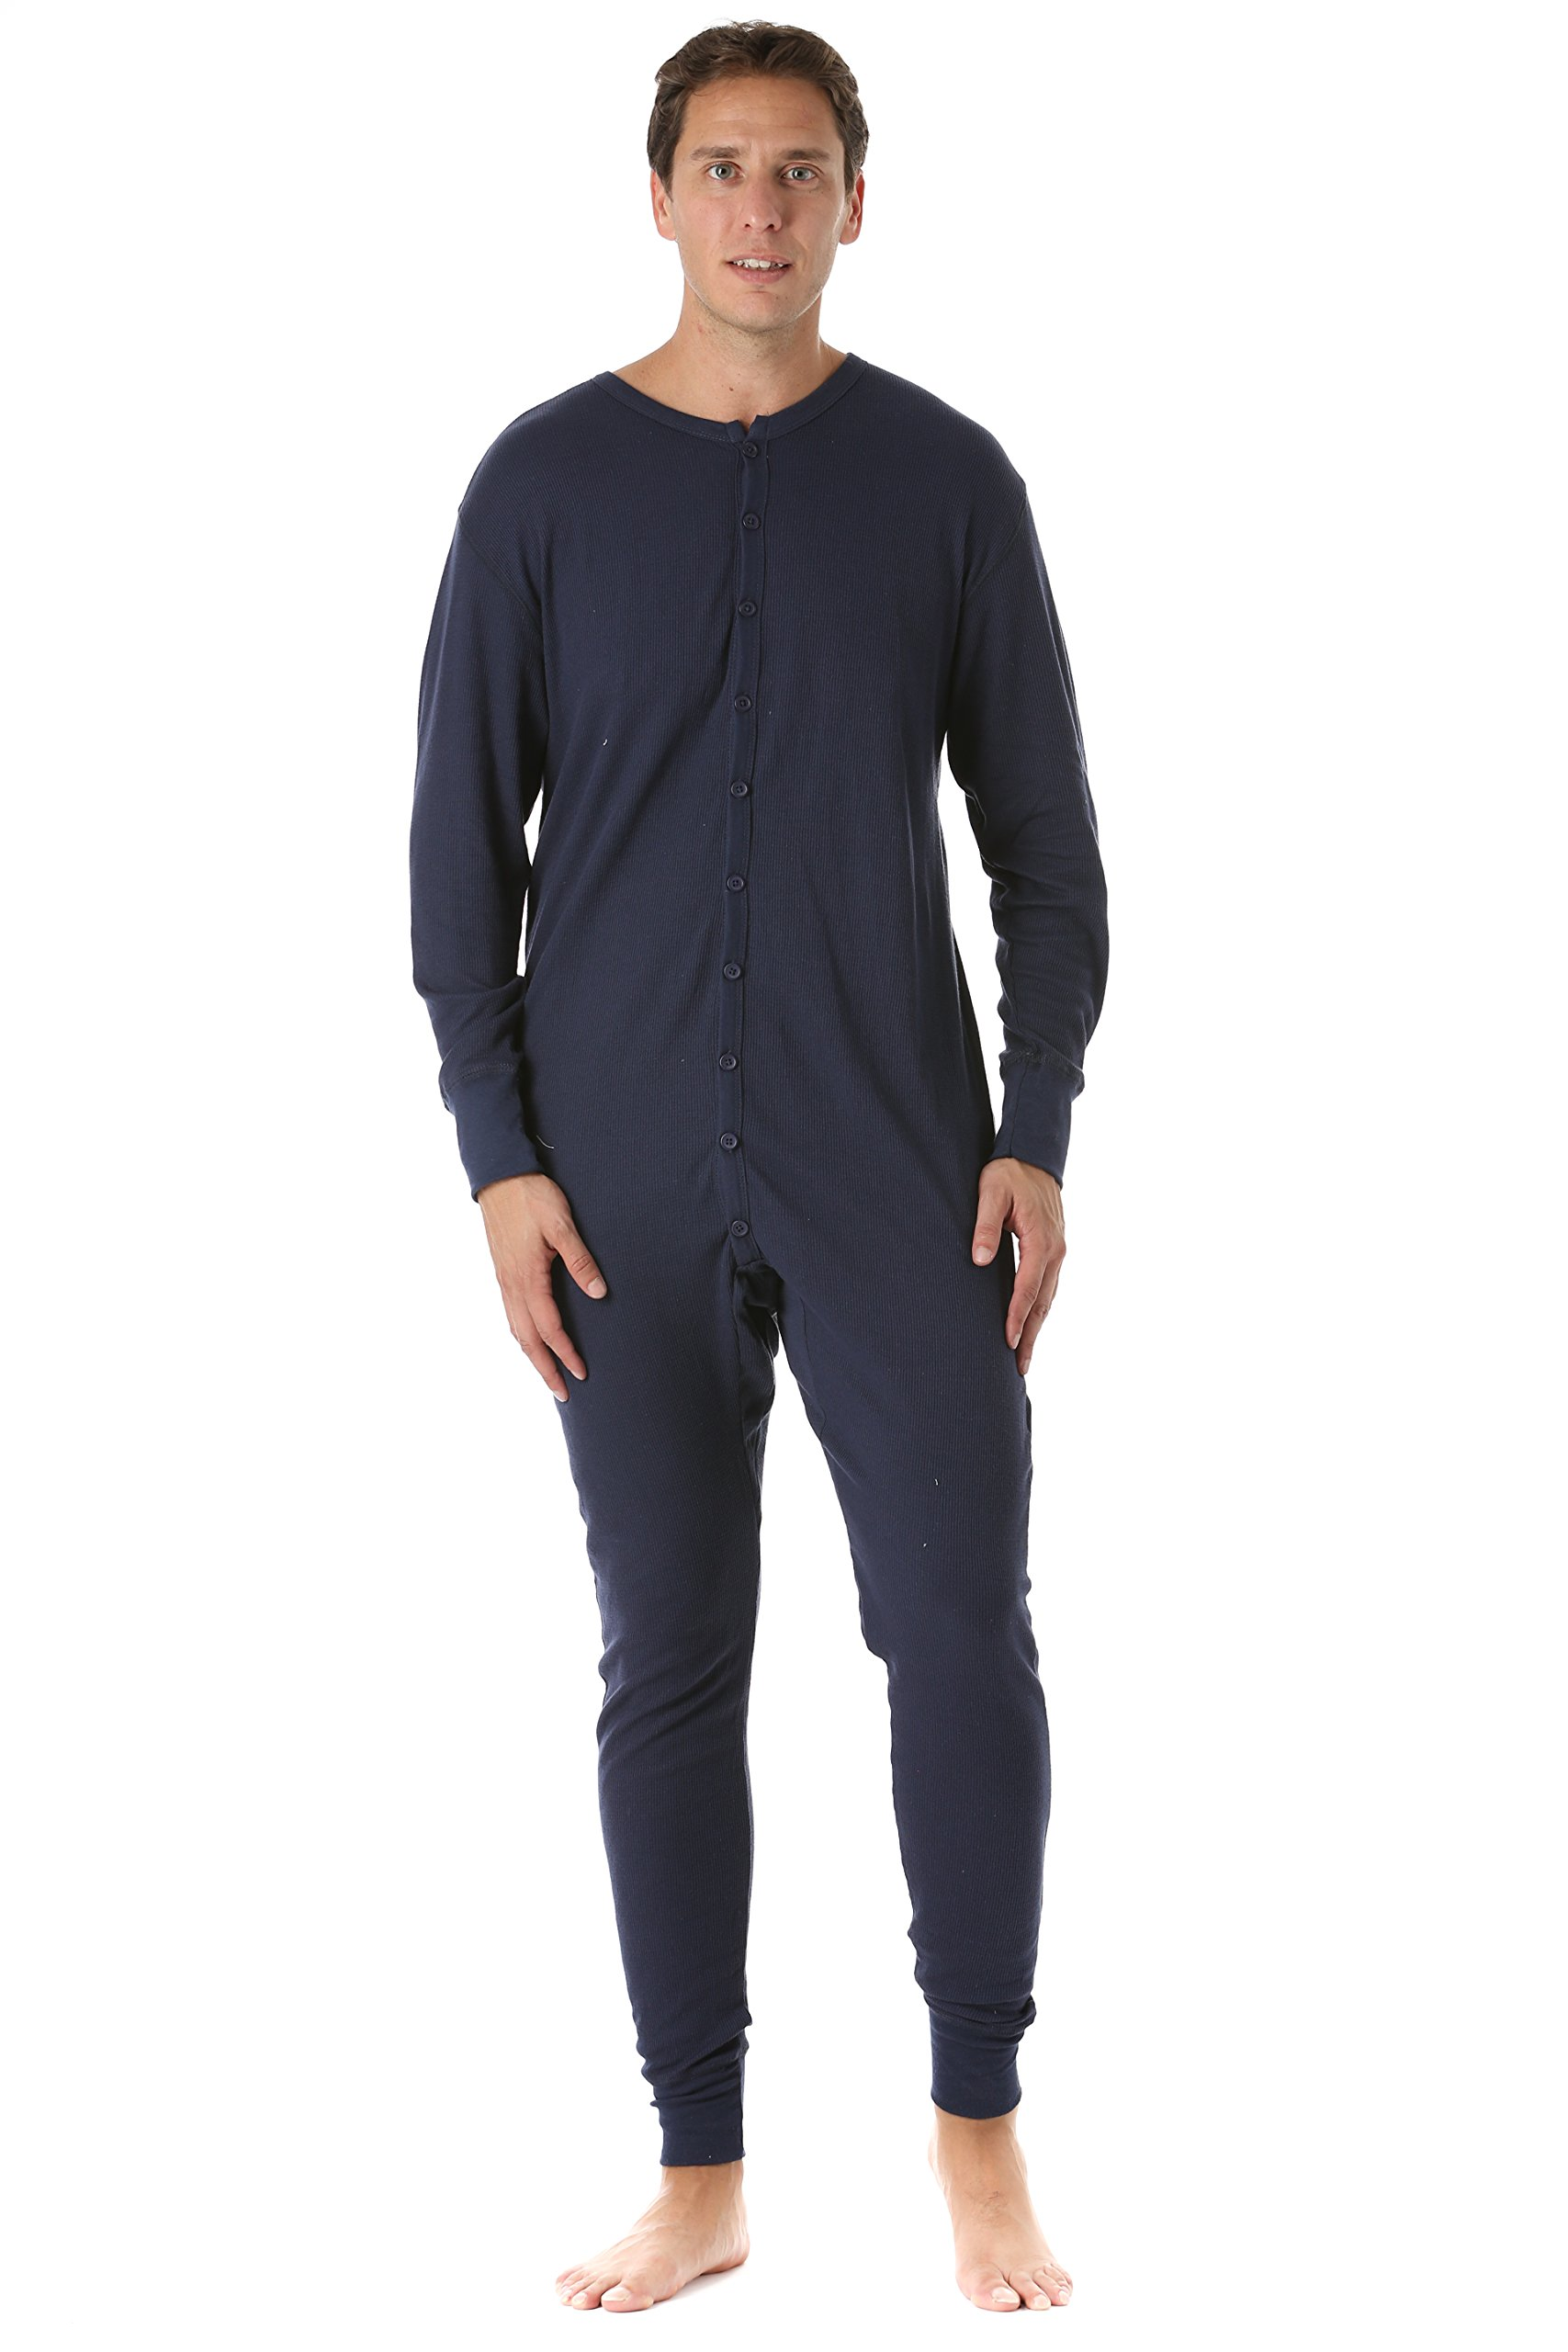 #followme 9393-NVY-XL Men's Solid Thermal Henley Onesie